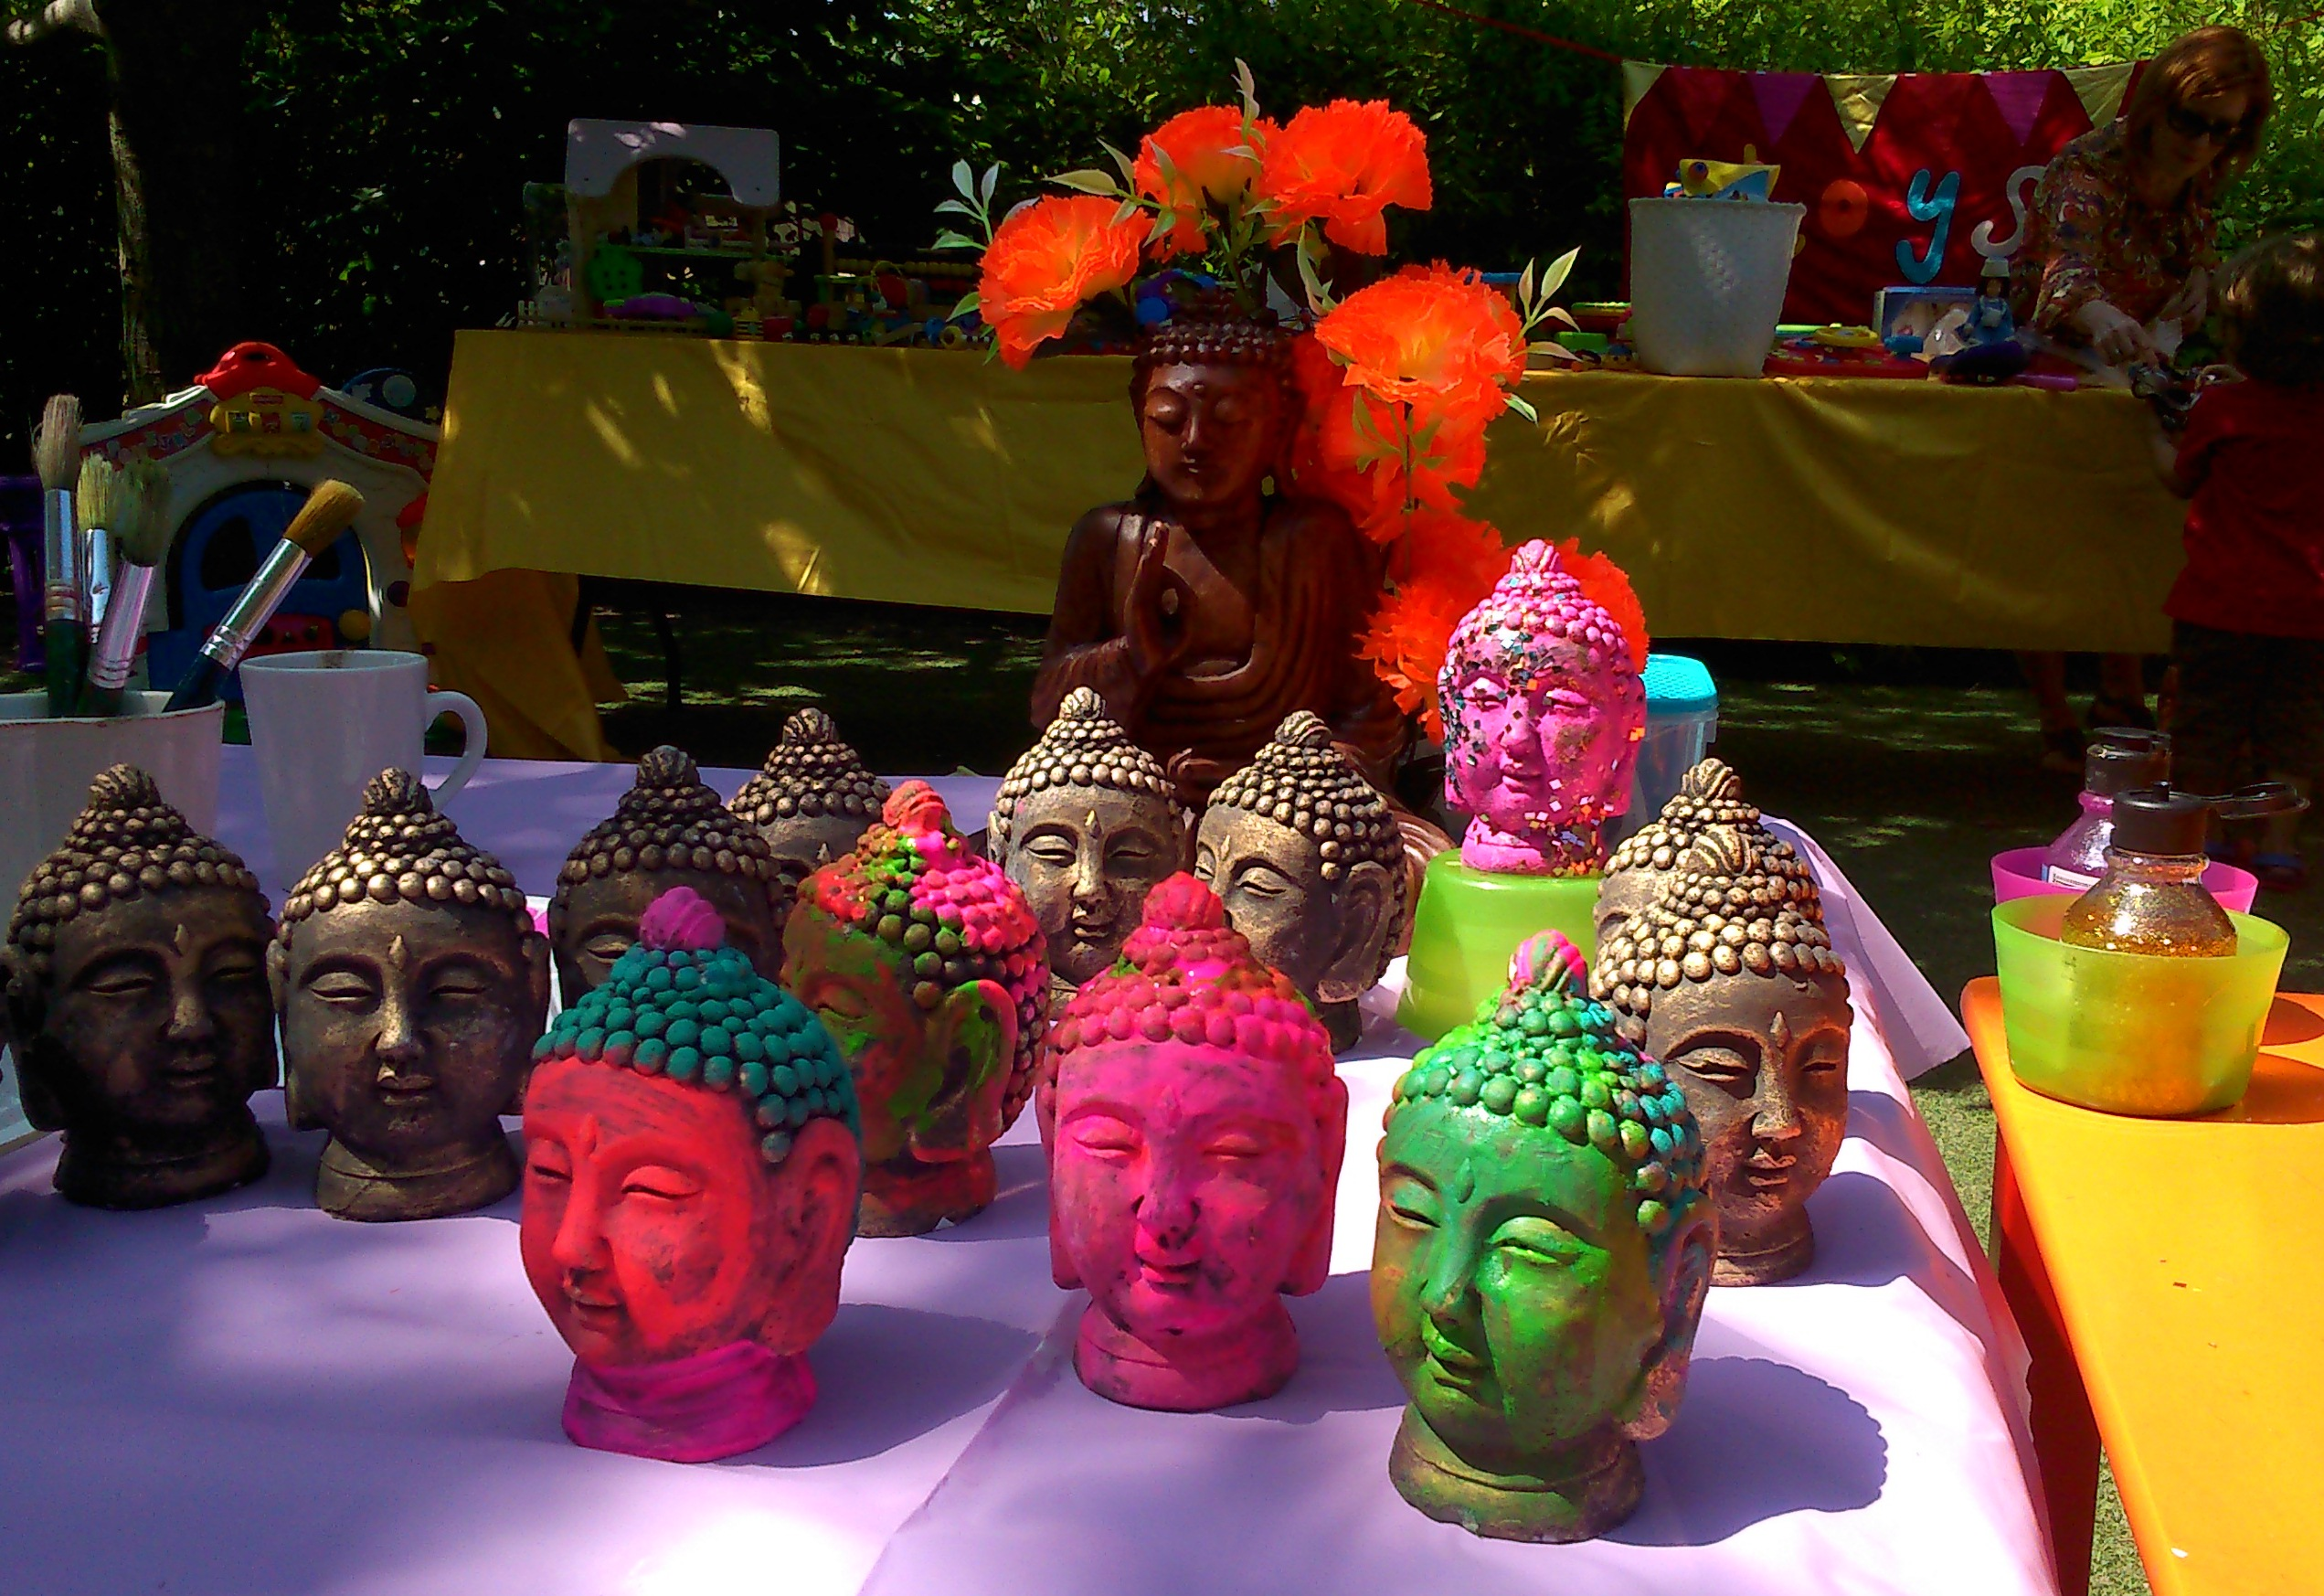 Summer Fayre 2014 - Painted Buddha Heads.jpg